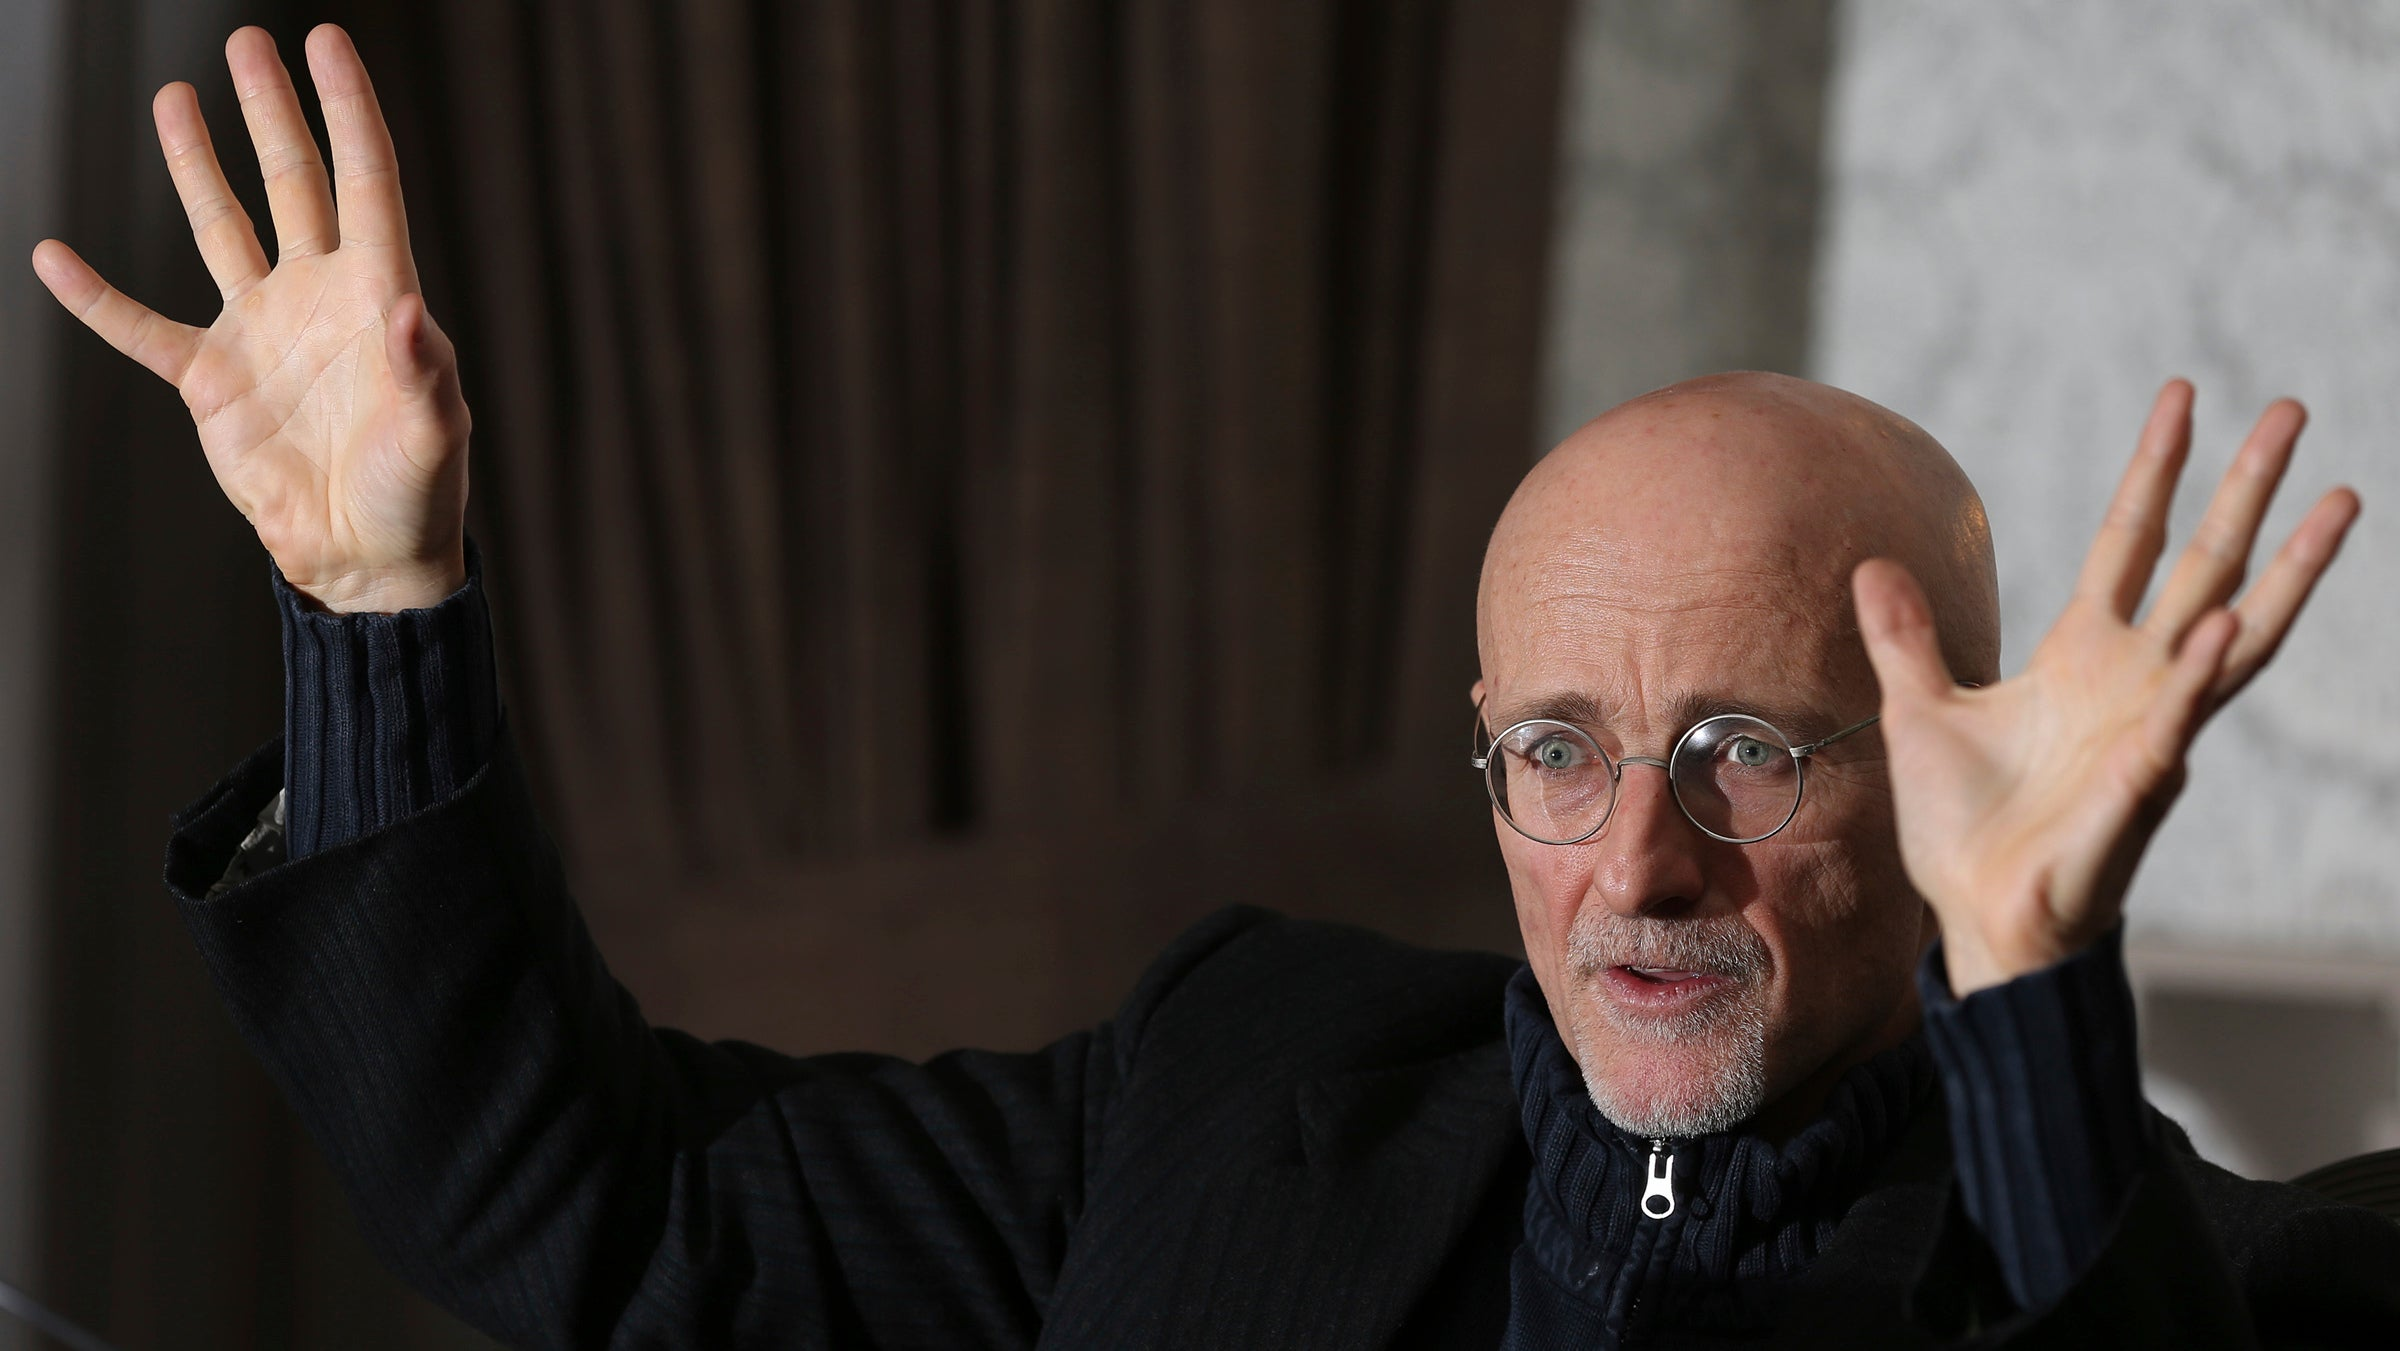 Head Transplant Doctor Claims First Successful Human Head Transplant... On A Corpse